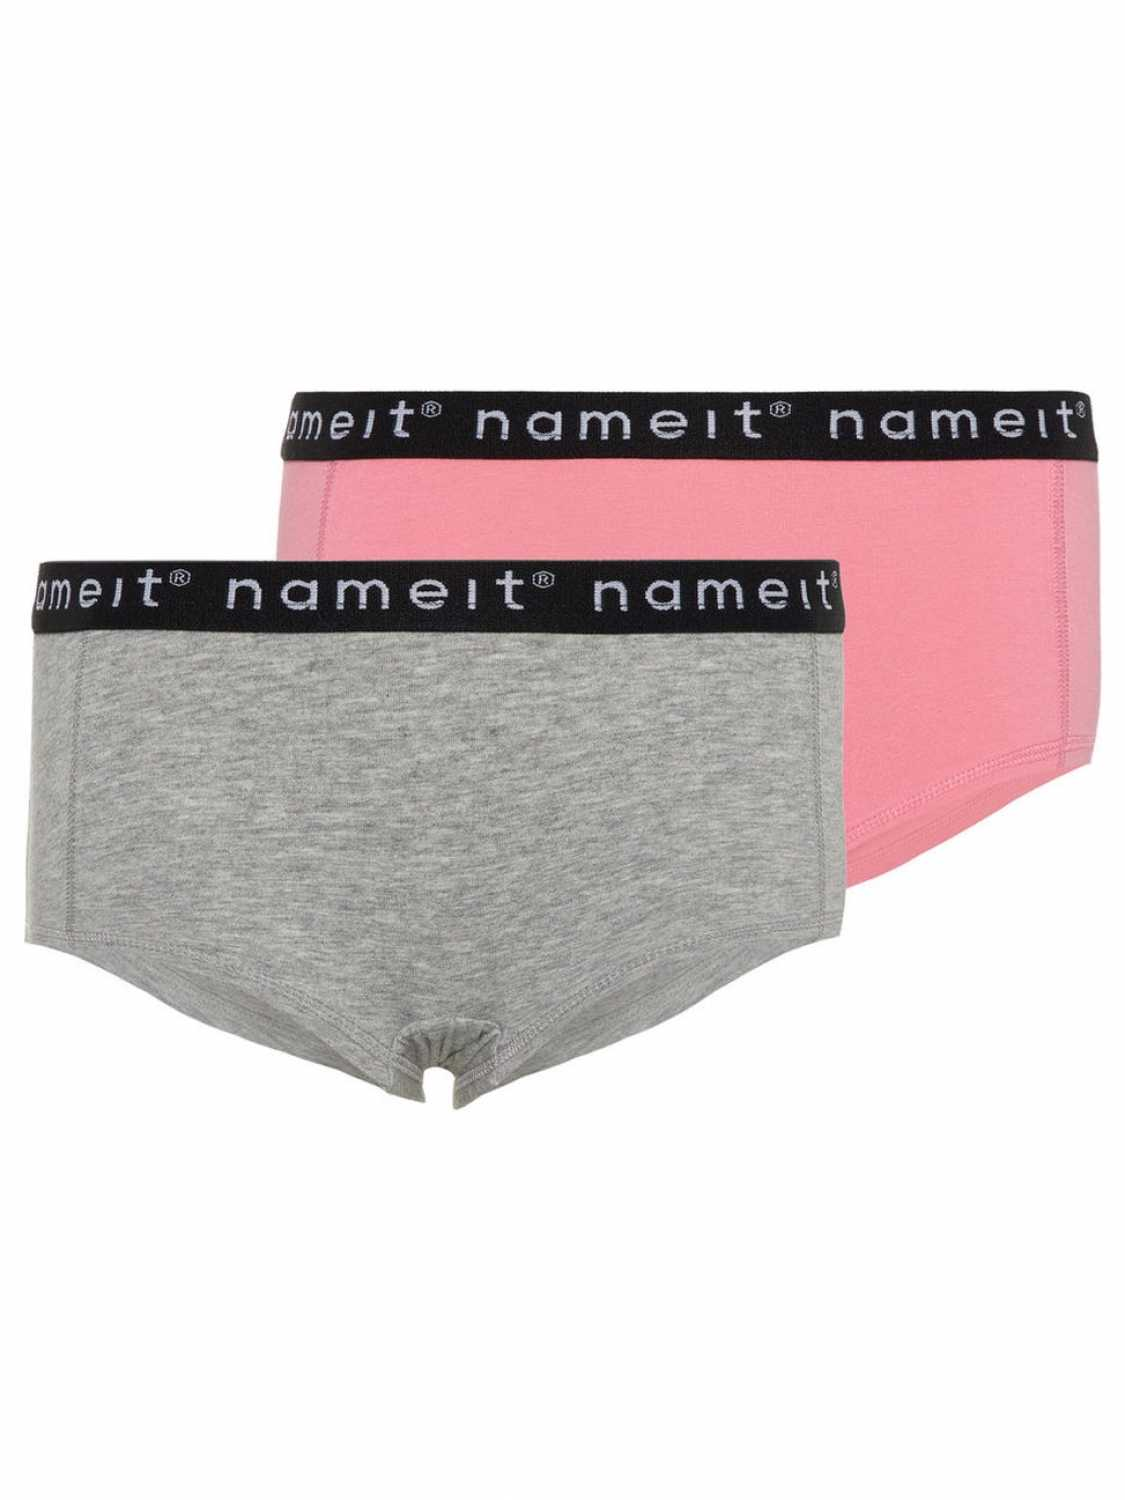 Name it 2-pack Hipster